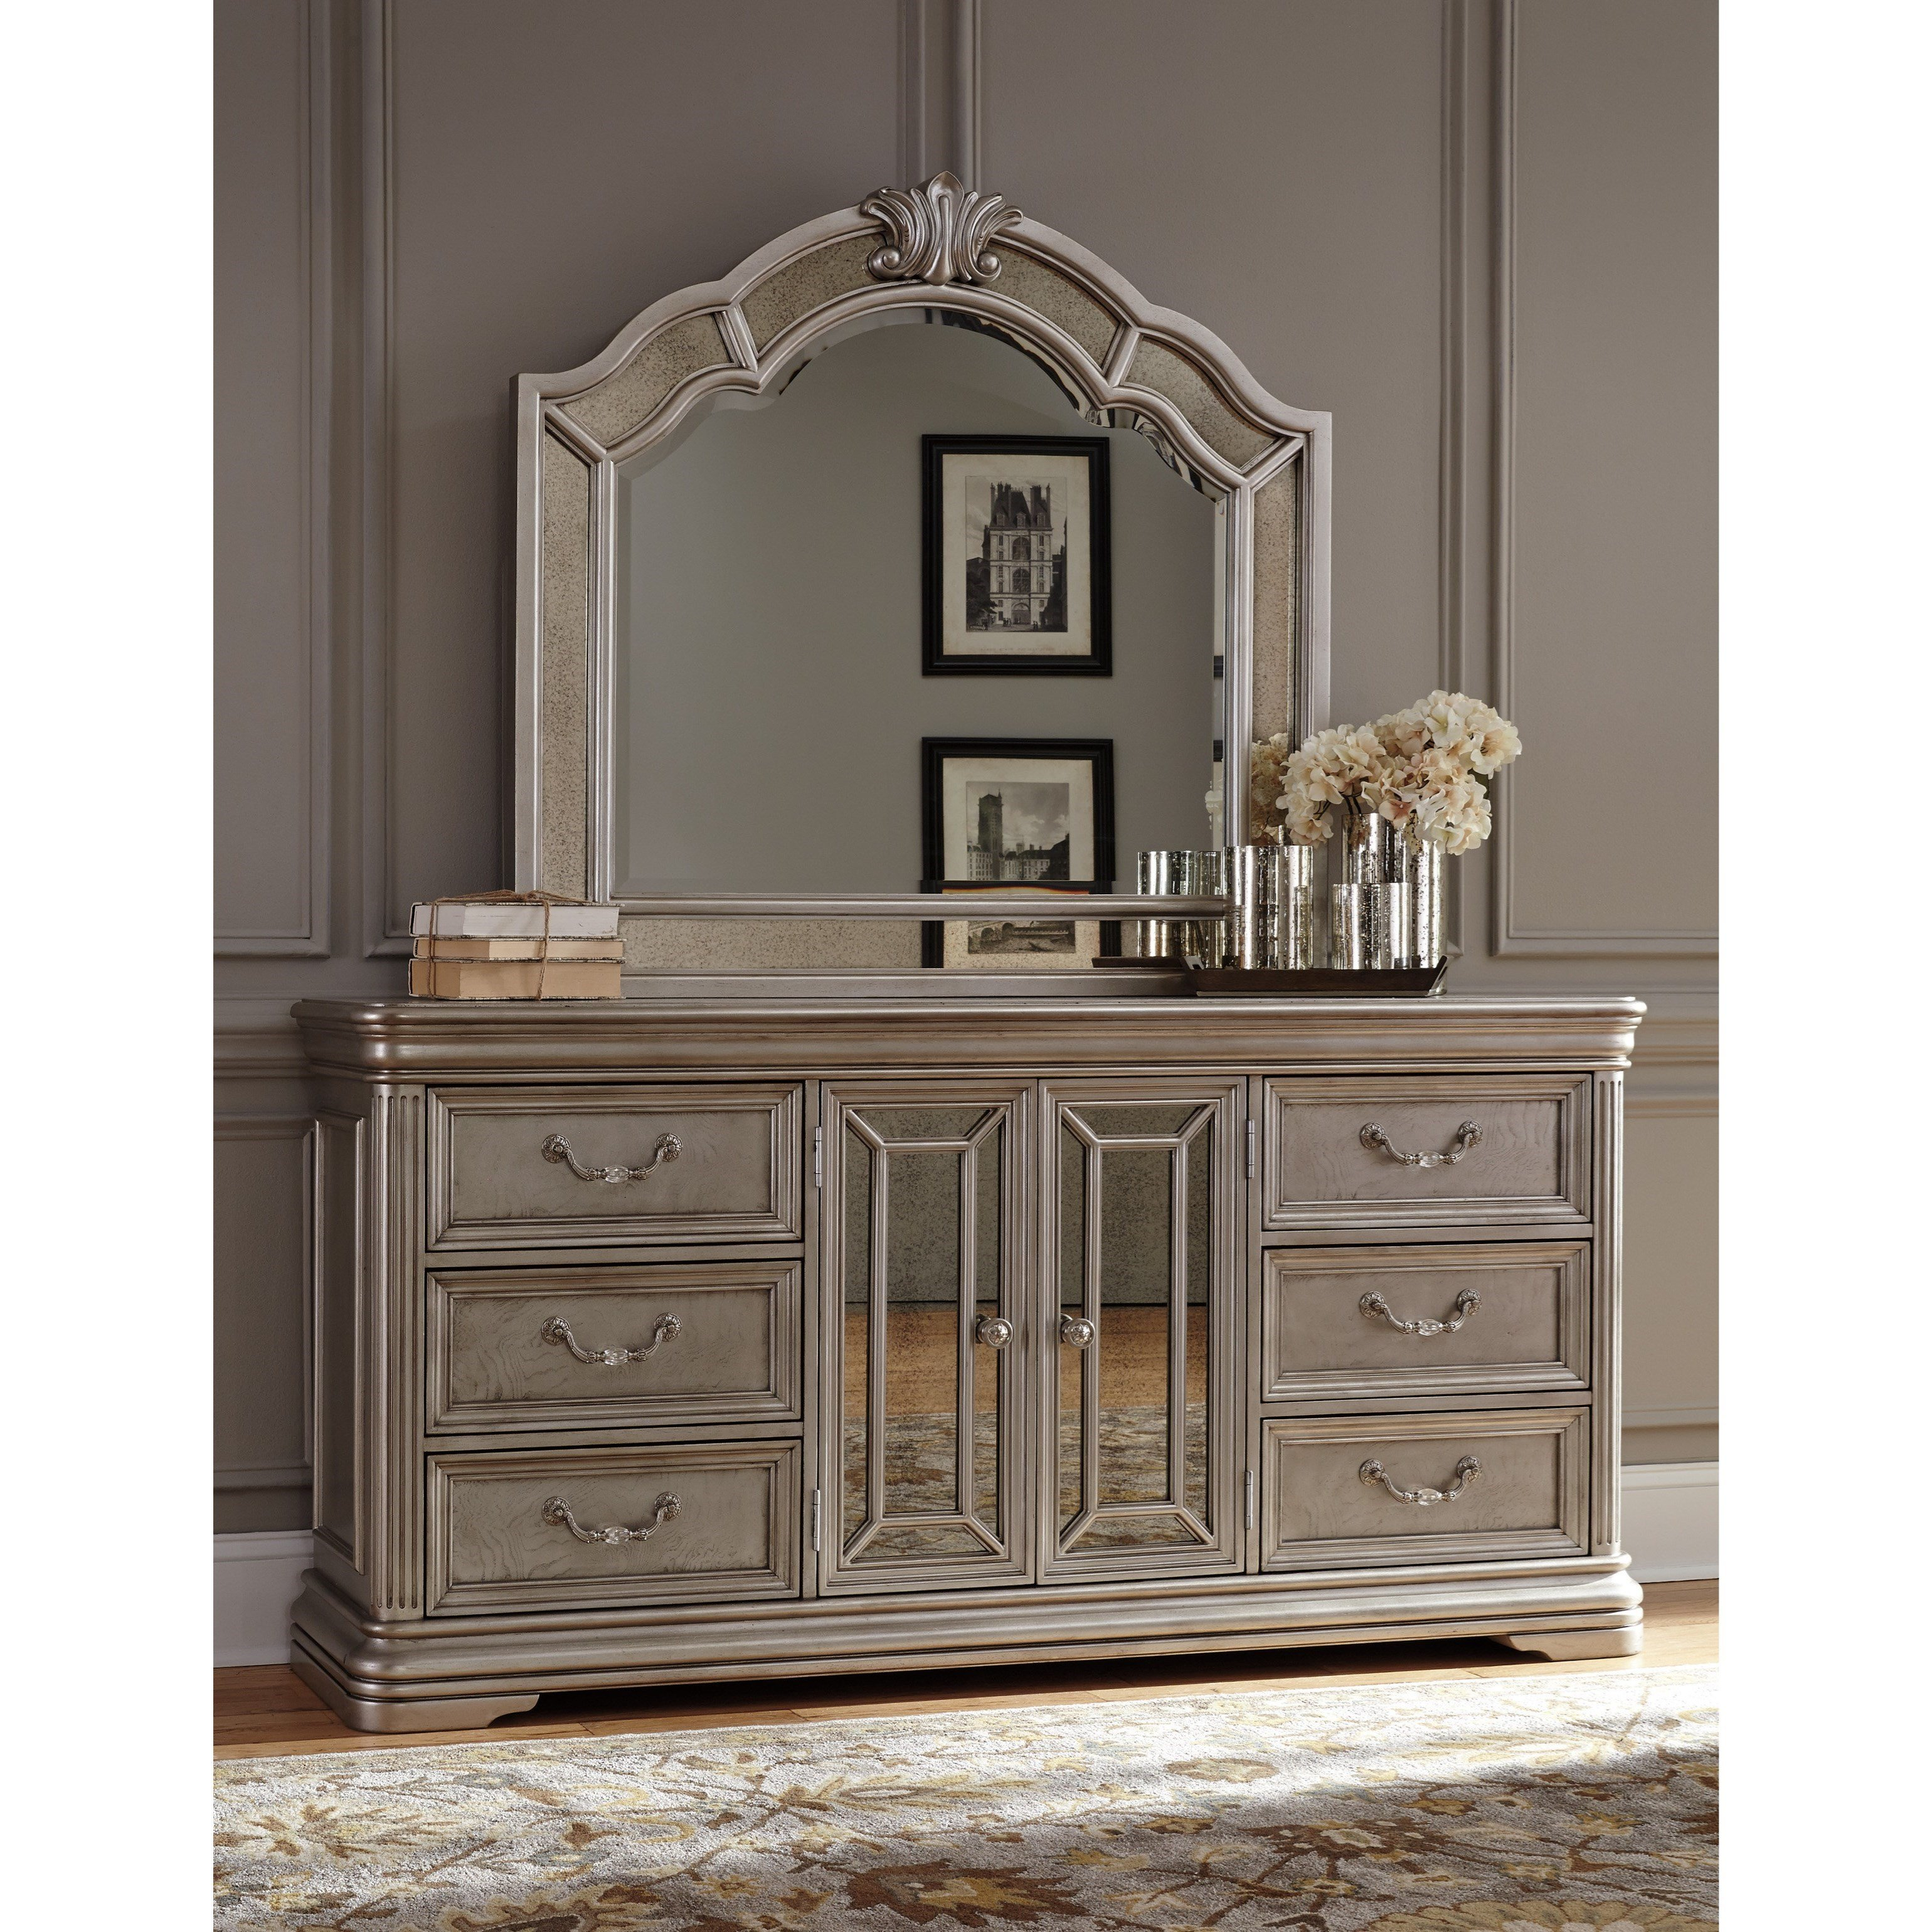 Best Signature Design By Ashley Birlanny Dresser With Mirror With Pictures